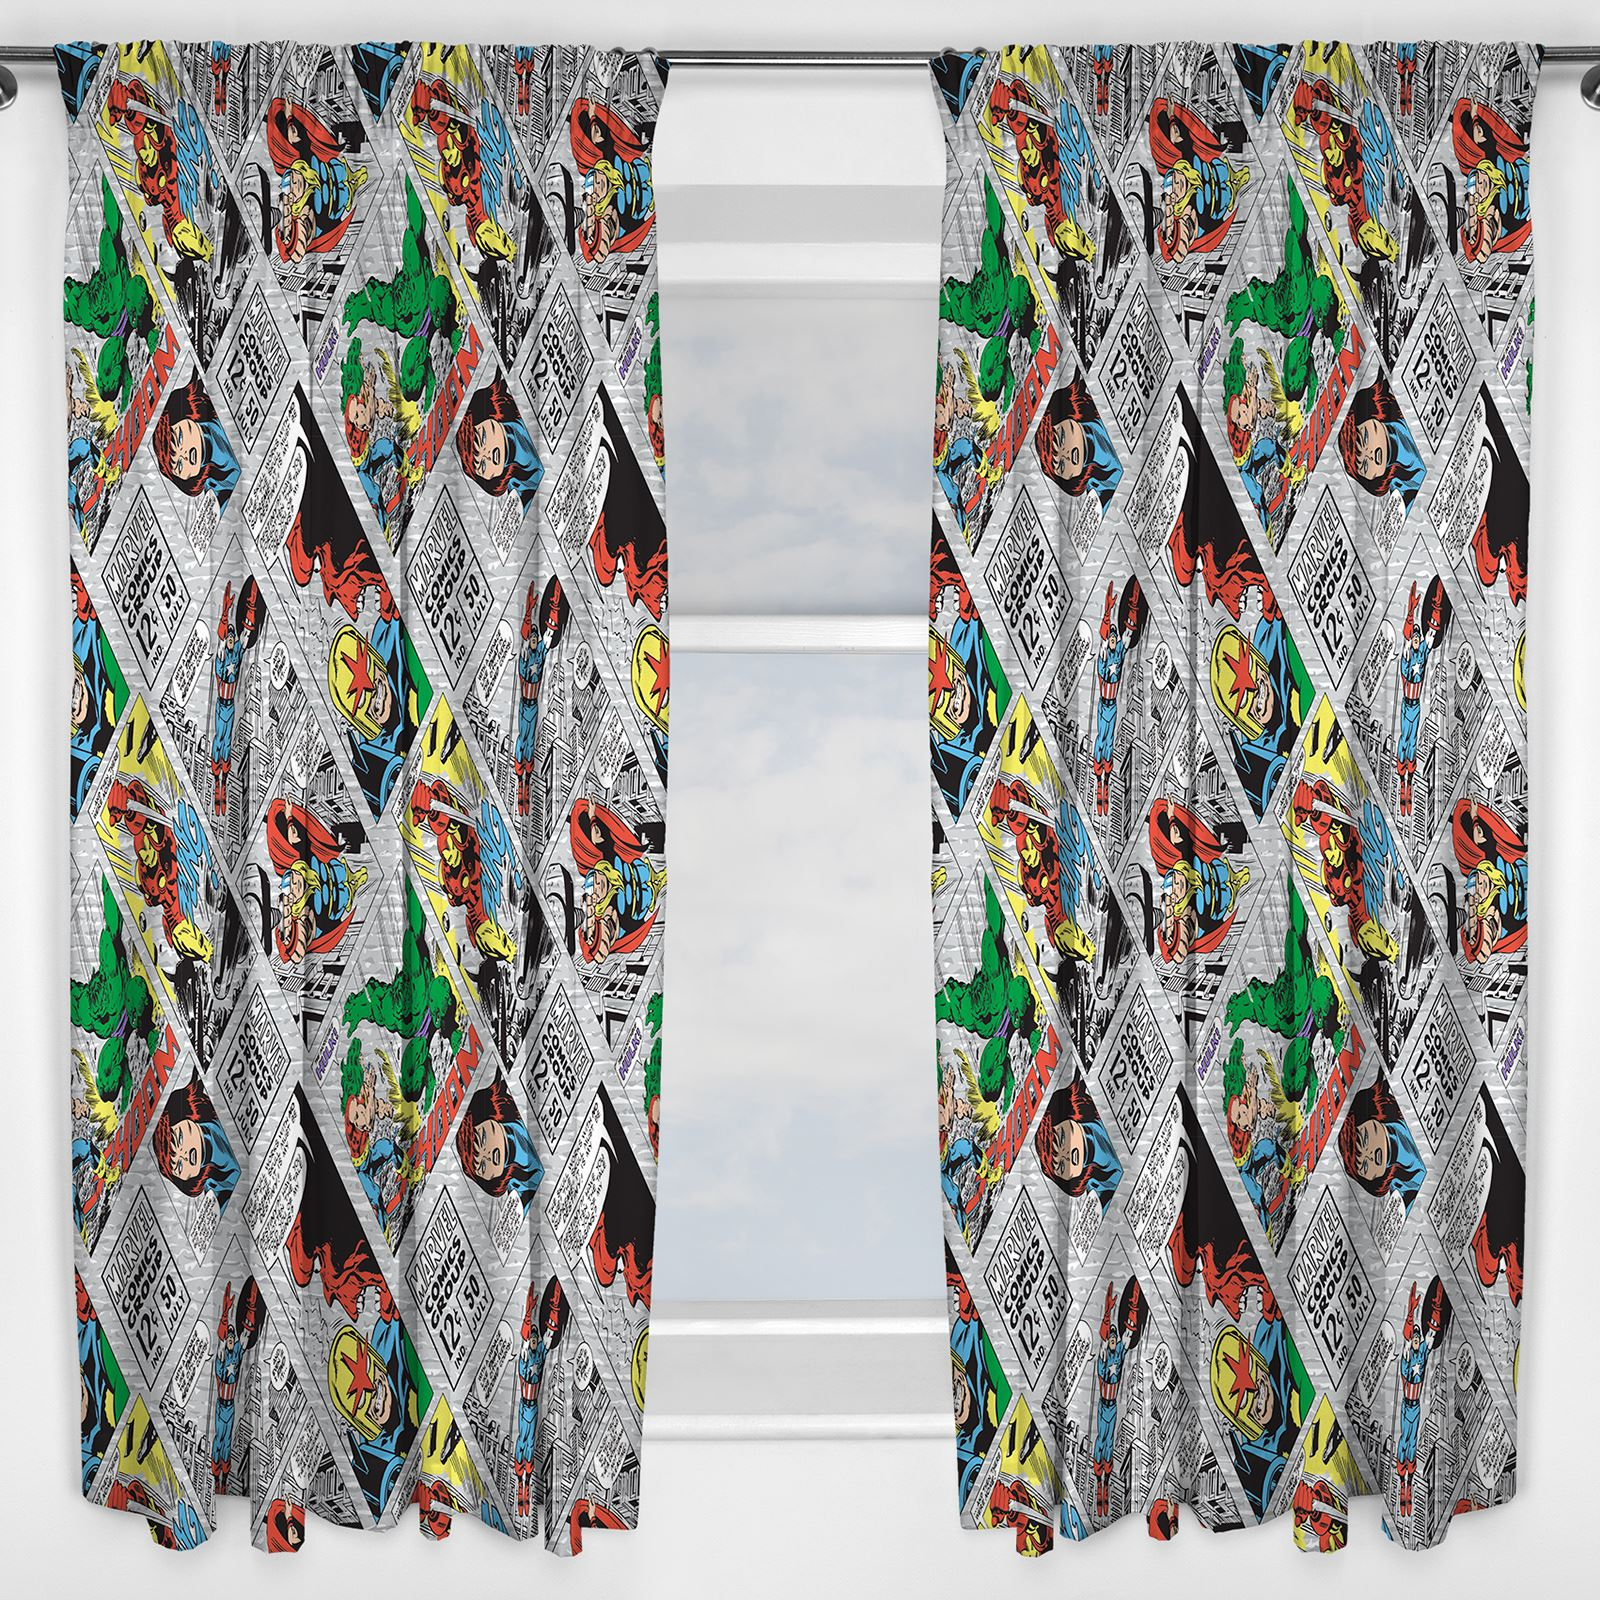 marvel comics retro curtains readymade kids iron man thor hulk 54 72 drop - Retro Curtains